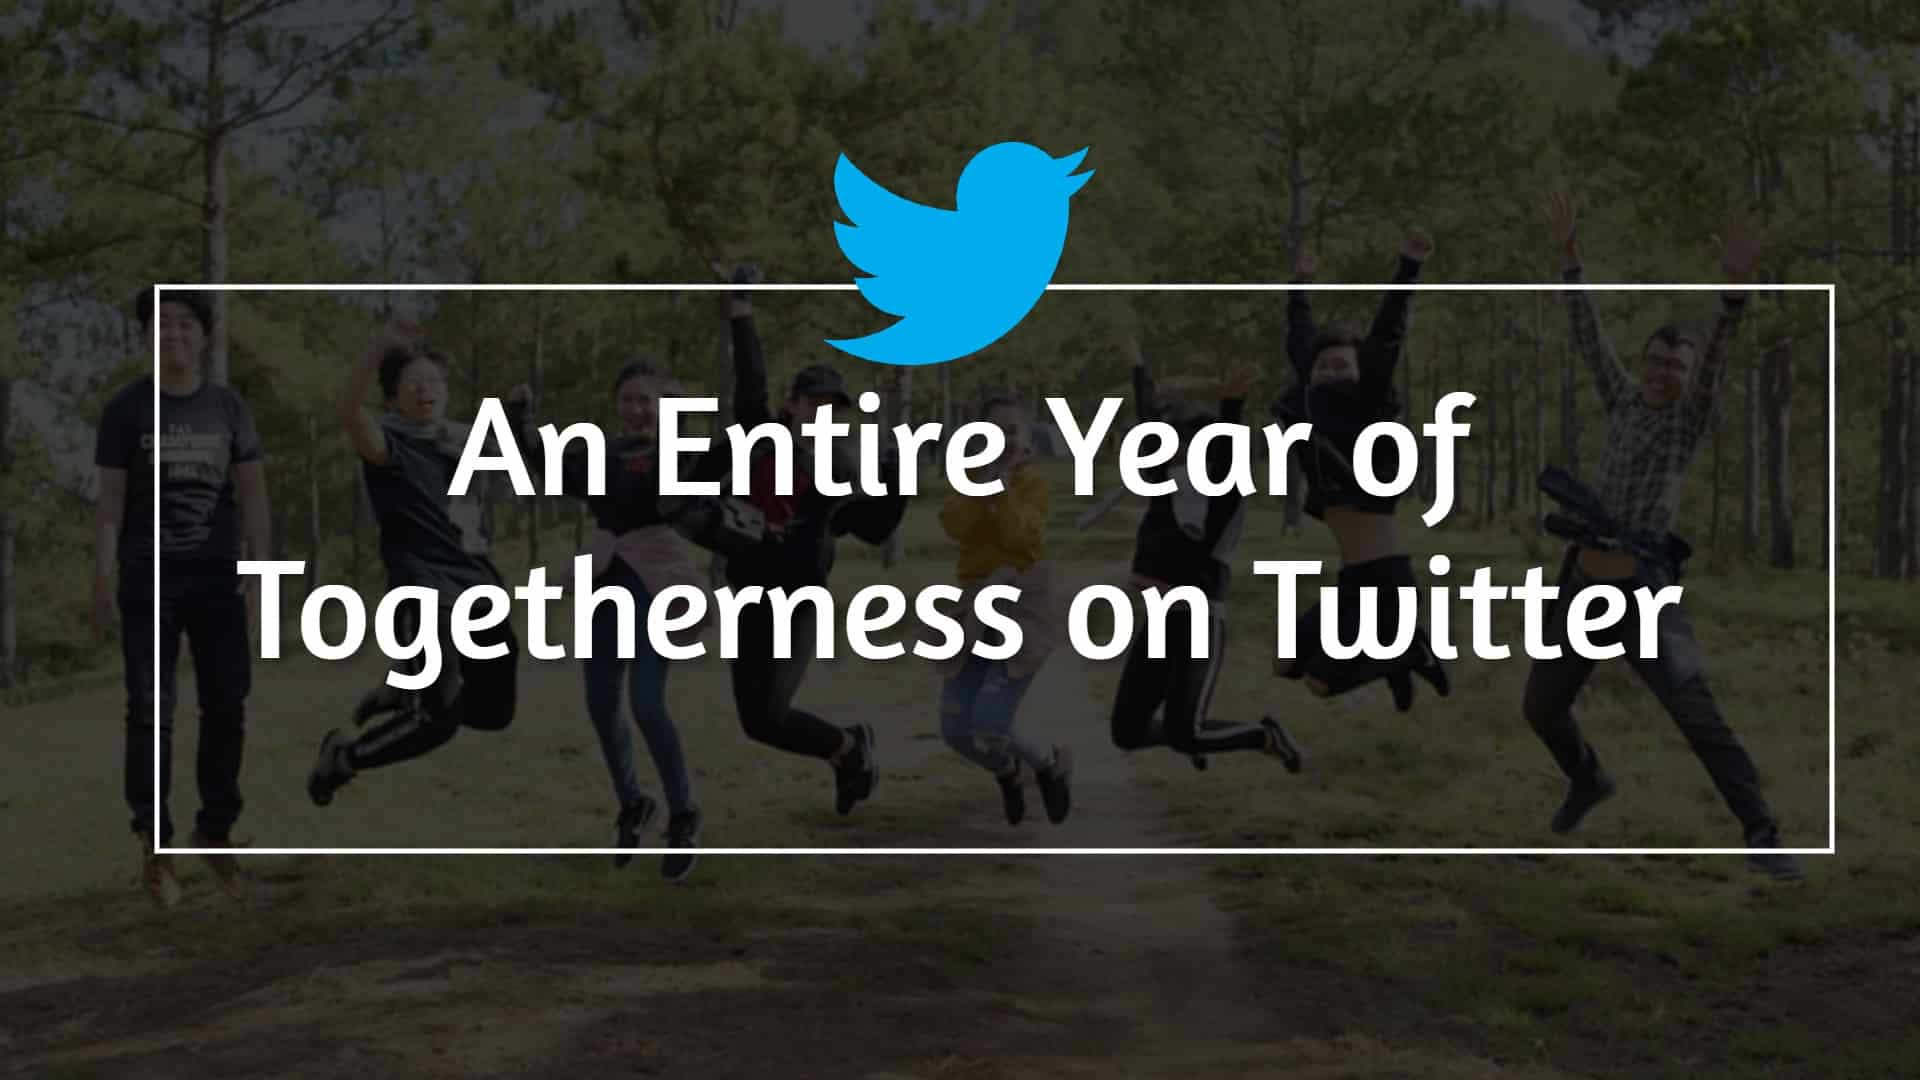 An Entire Year of Togetherness on Twitter